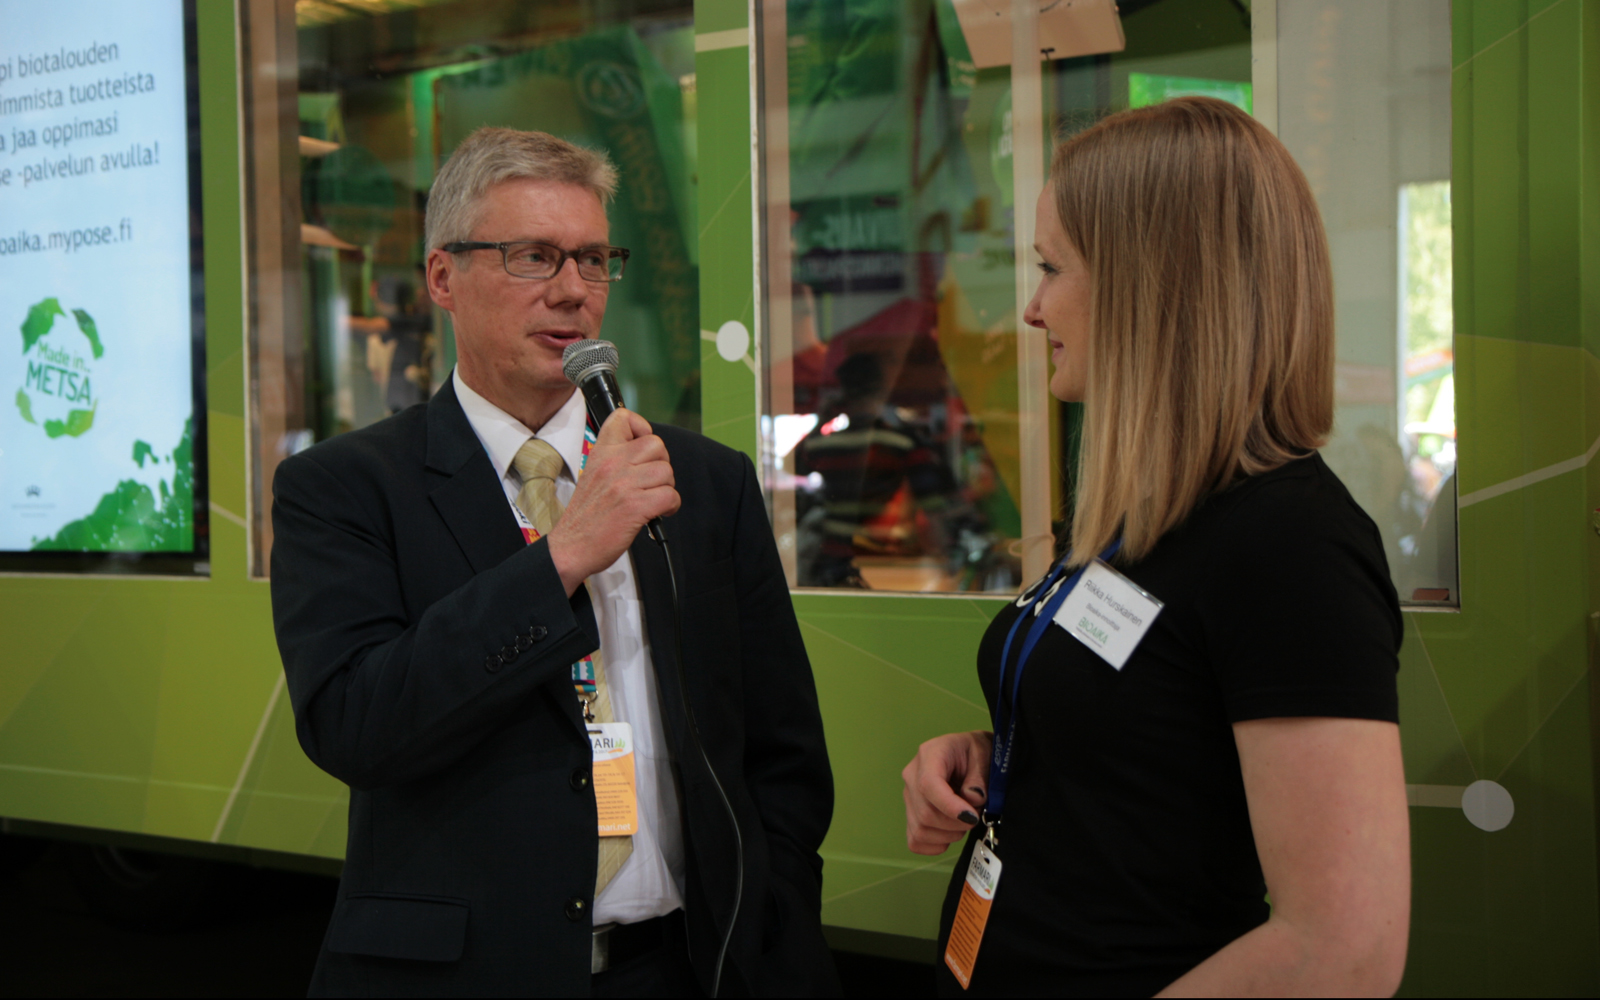 """""""The Bio Era is the future,"""" says Jorma Rasinmäki, the Mayor of Seinäjoki, interviewed by one of the Bio Era guides Riikka Hurskainen. """"The younger you are when learning about these themes, the better the innovations will be."""" Photo: Anna Kauppi"""